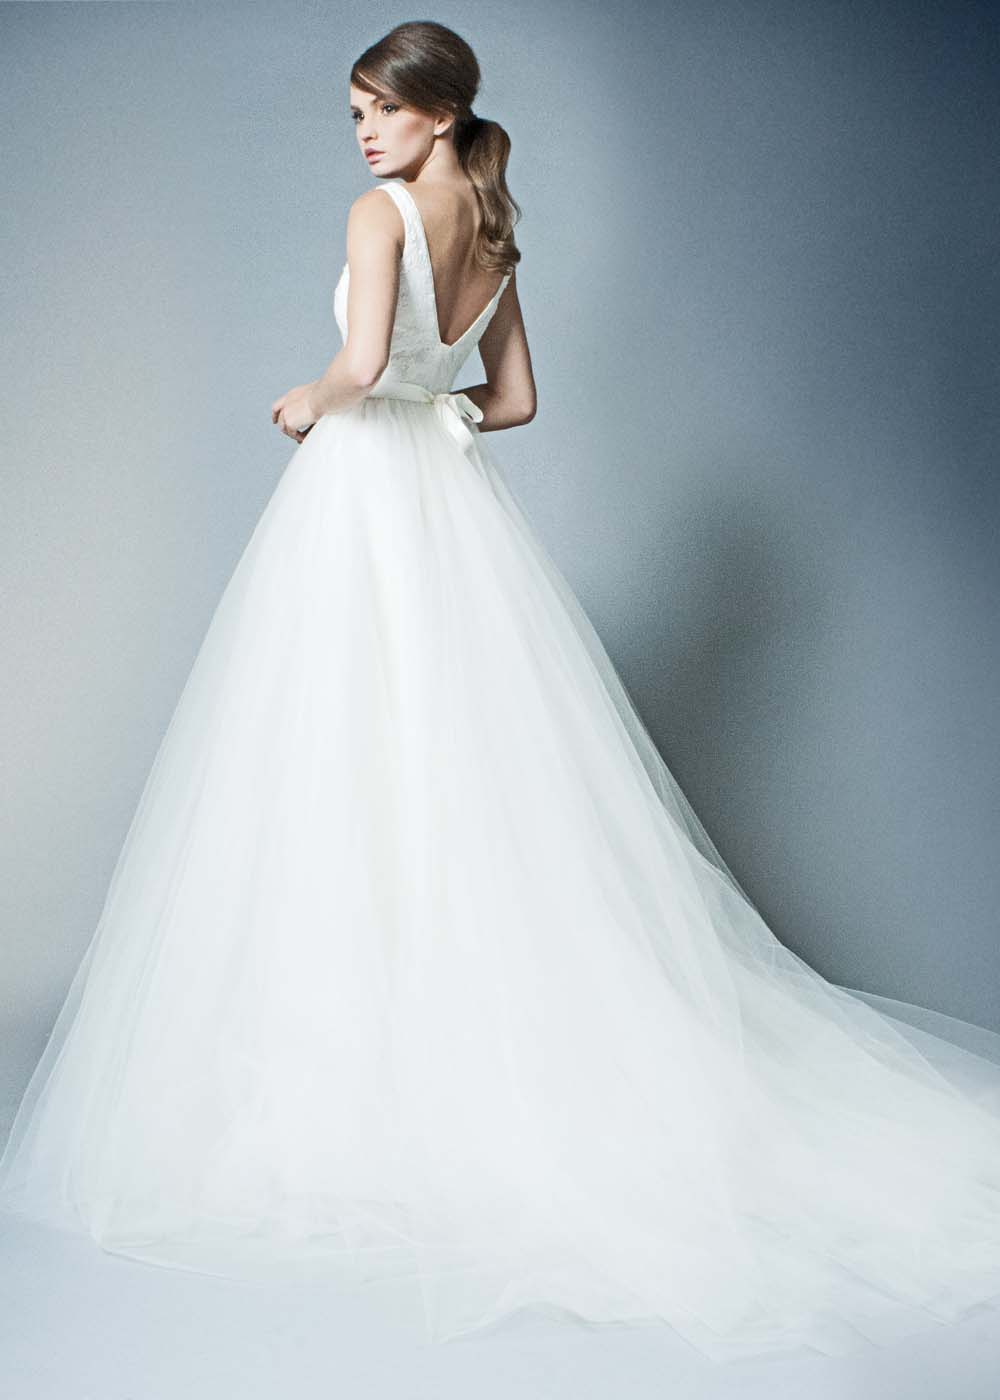 Nice Wedding Gowns Ottawa Ensign - Wedding Dress - googeb.com